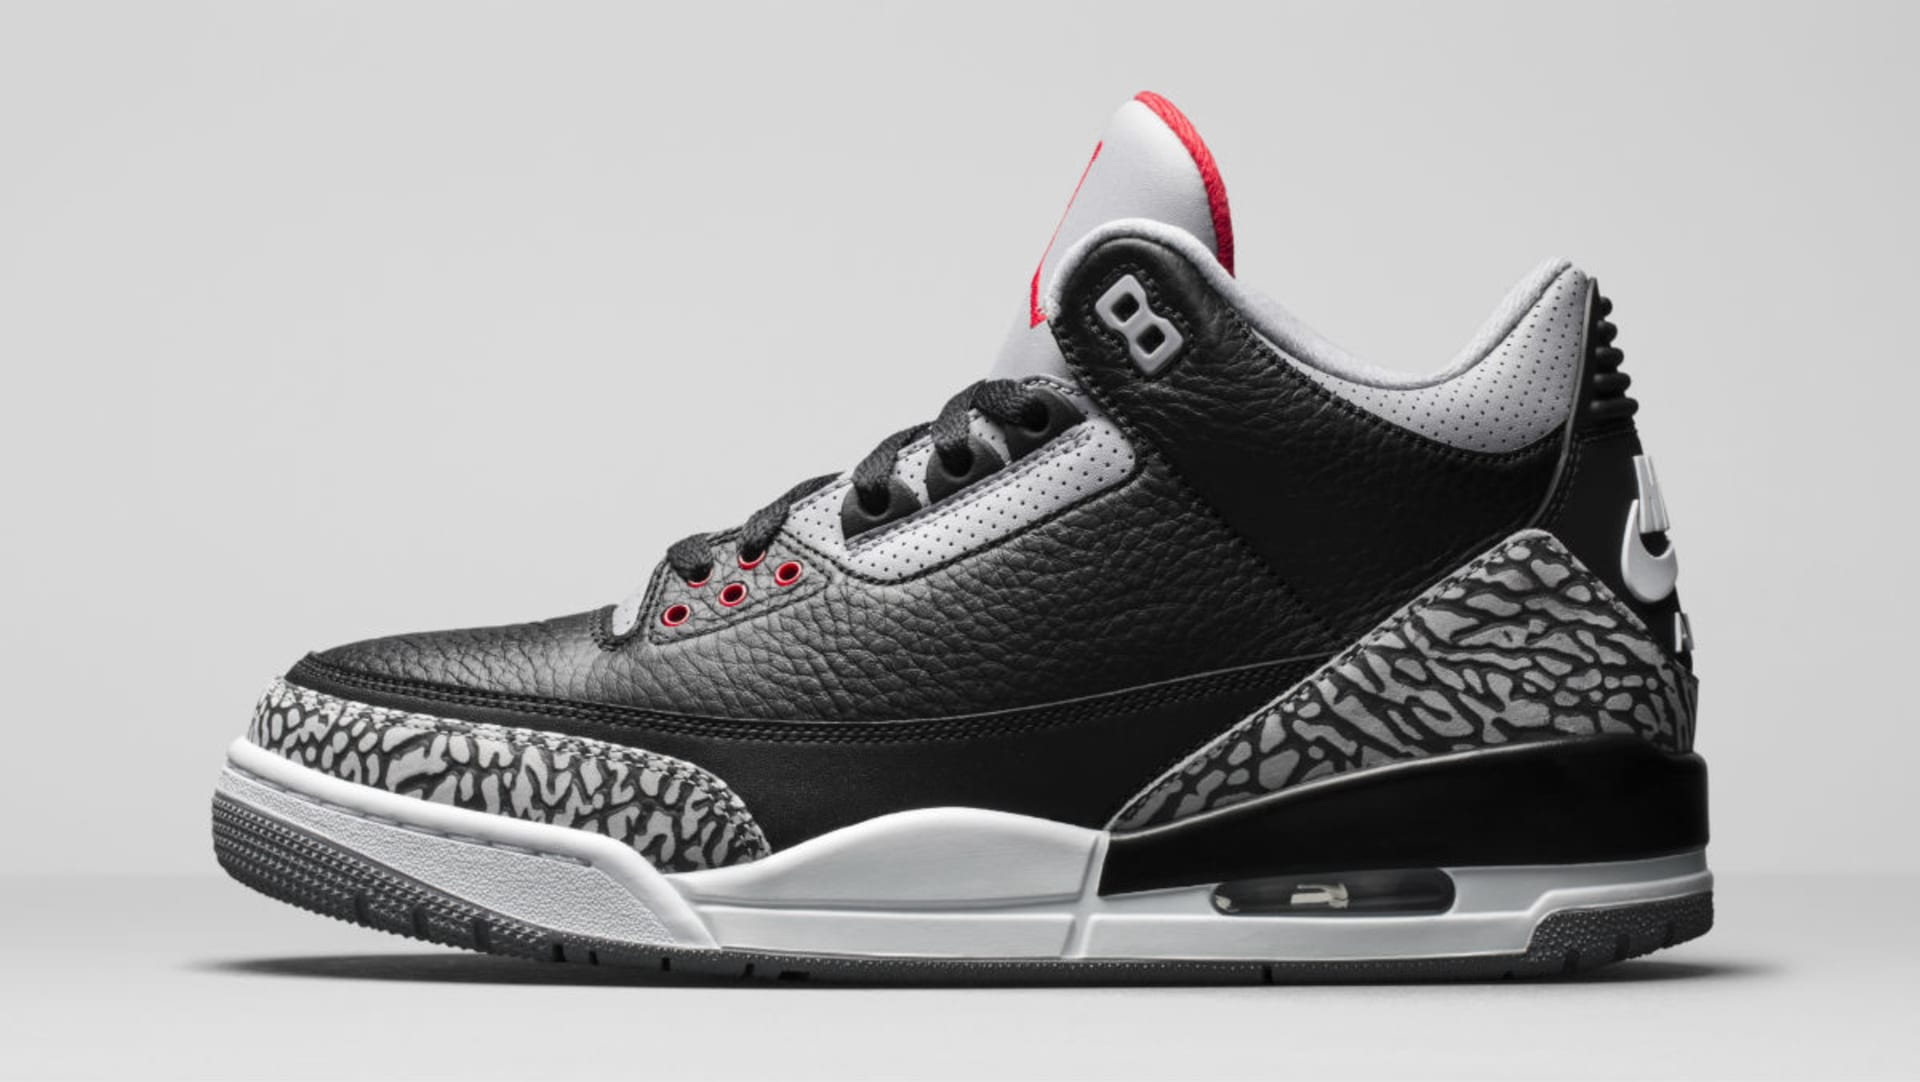 60ba4289a6c86f Air Jordan 3 III Black Cement Release Date 854262-001 Profile